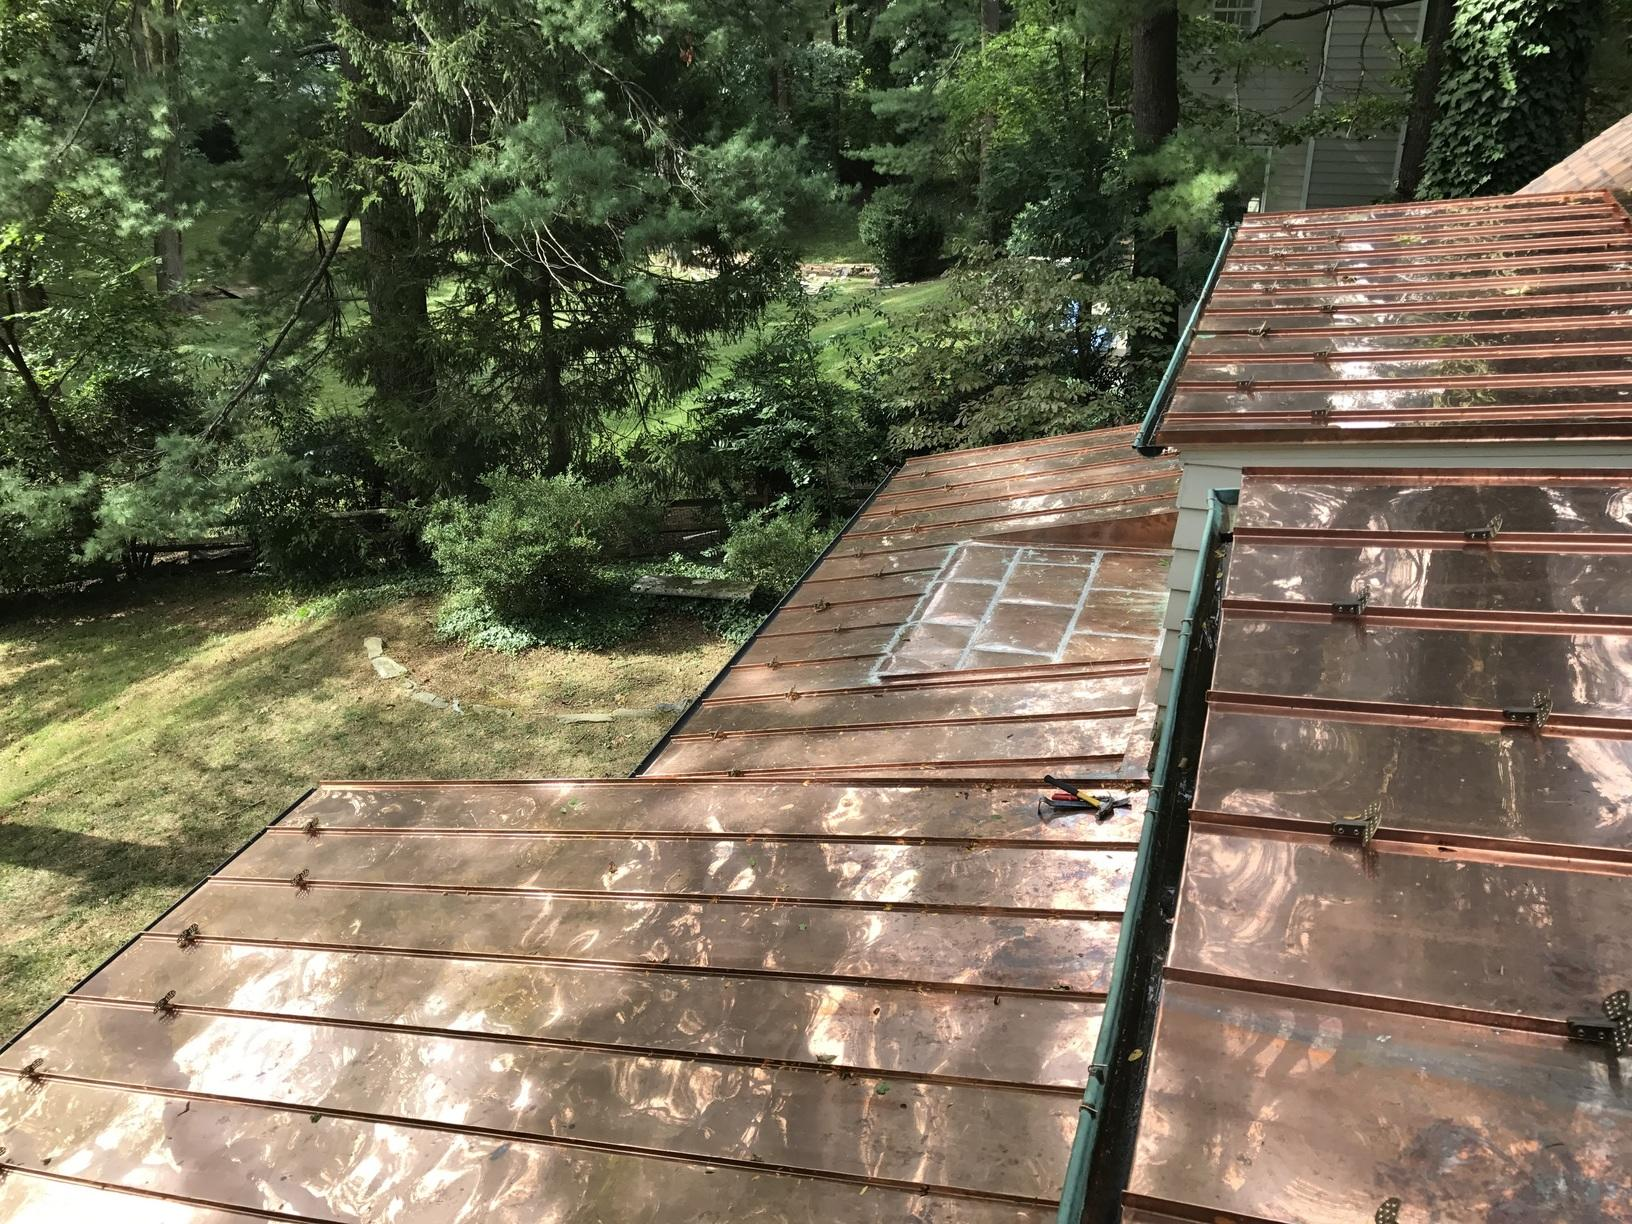 Bryn Mawr - Certainteed Landmark Shingles and Copper Standing Seam Roof - After Photo